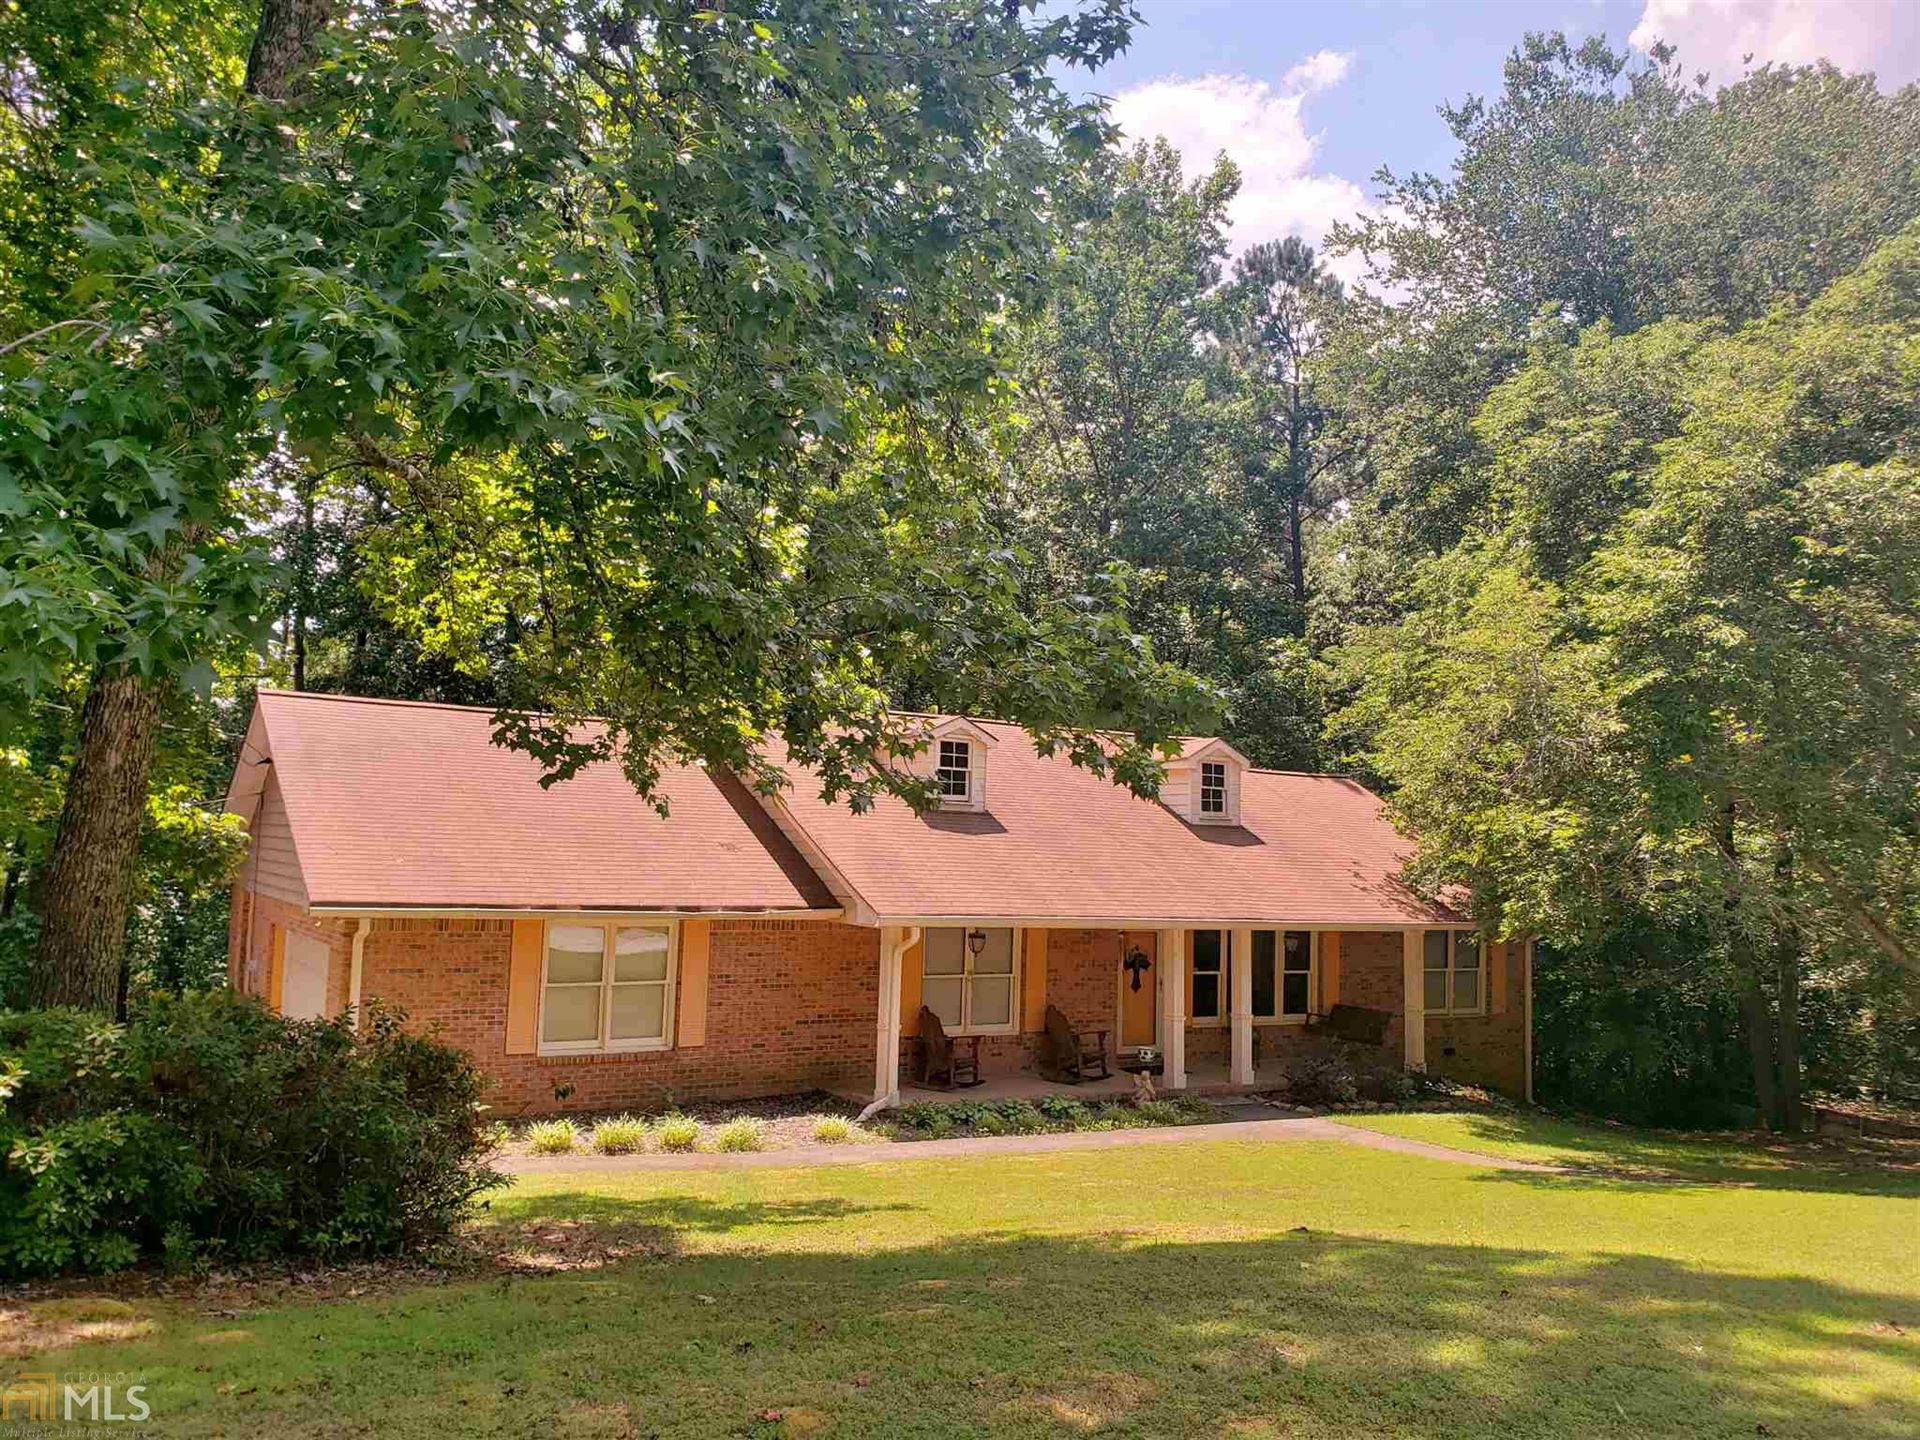 1290 Shadowlawn Dr, Conyers, GA 30012 - MLS#: 8900465